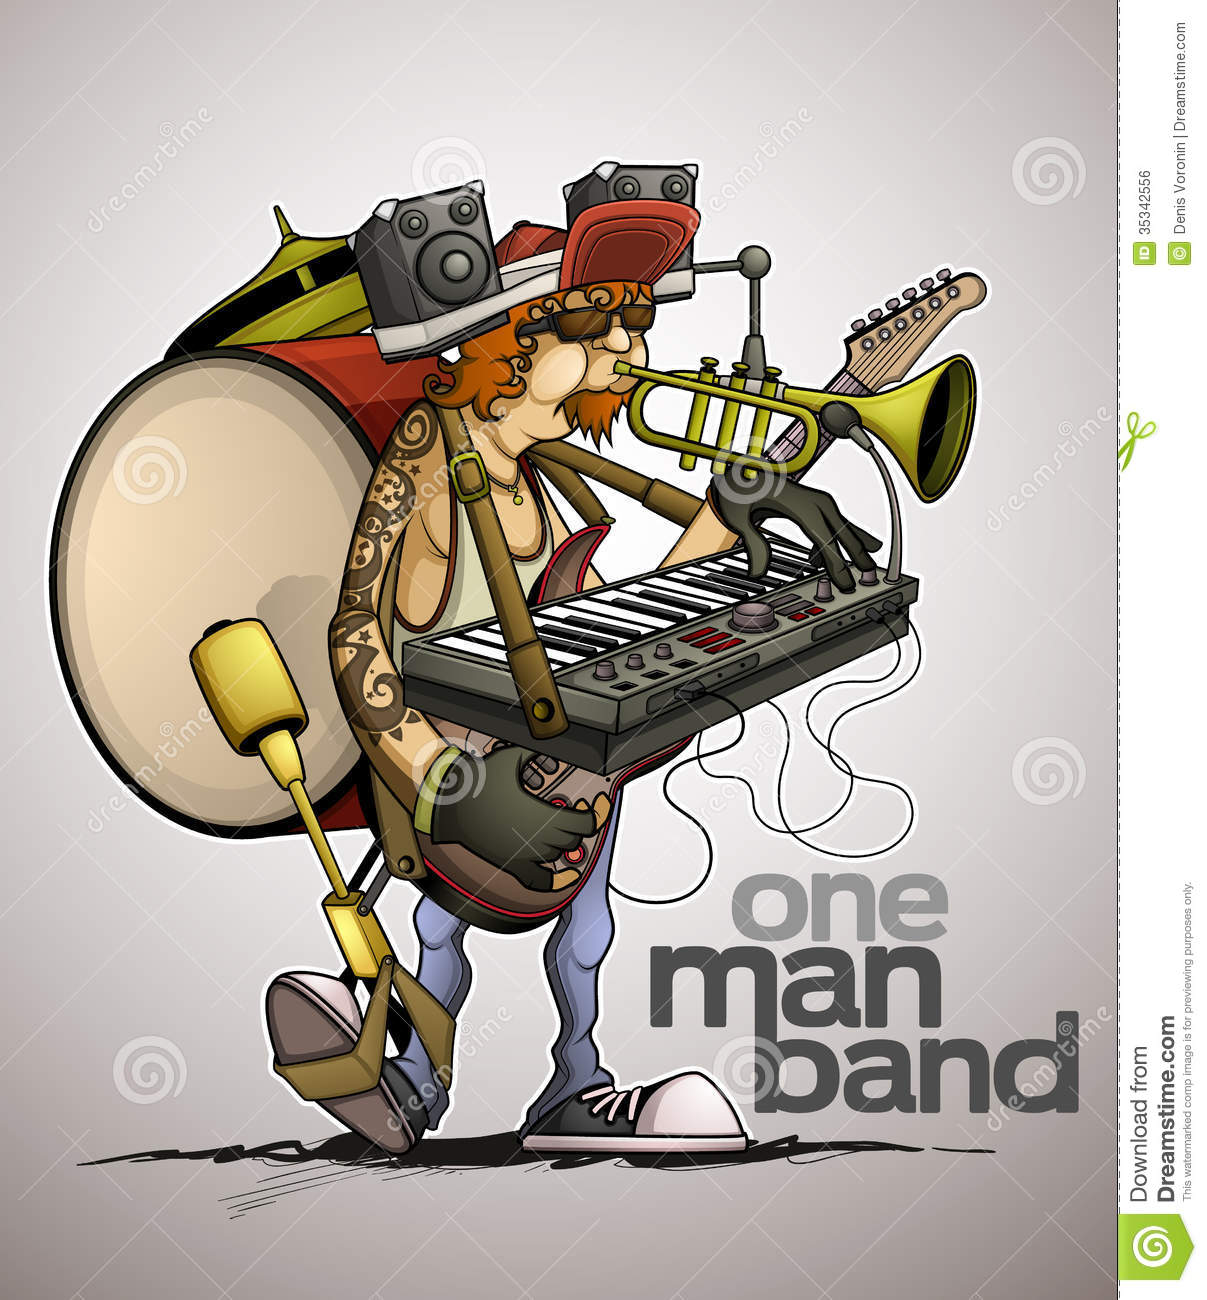 Modern One Man Band Royalty Free Stock Image.